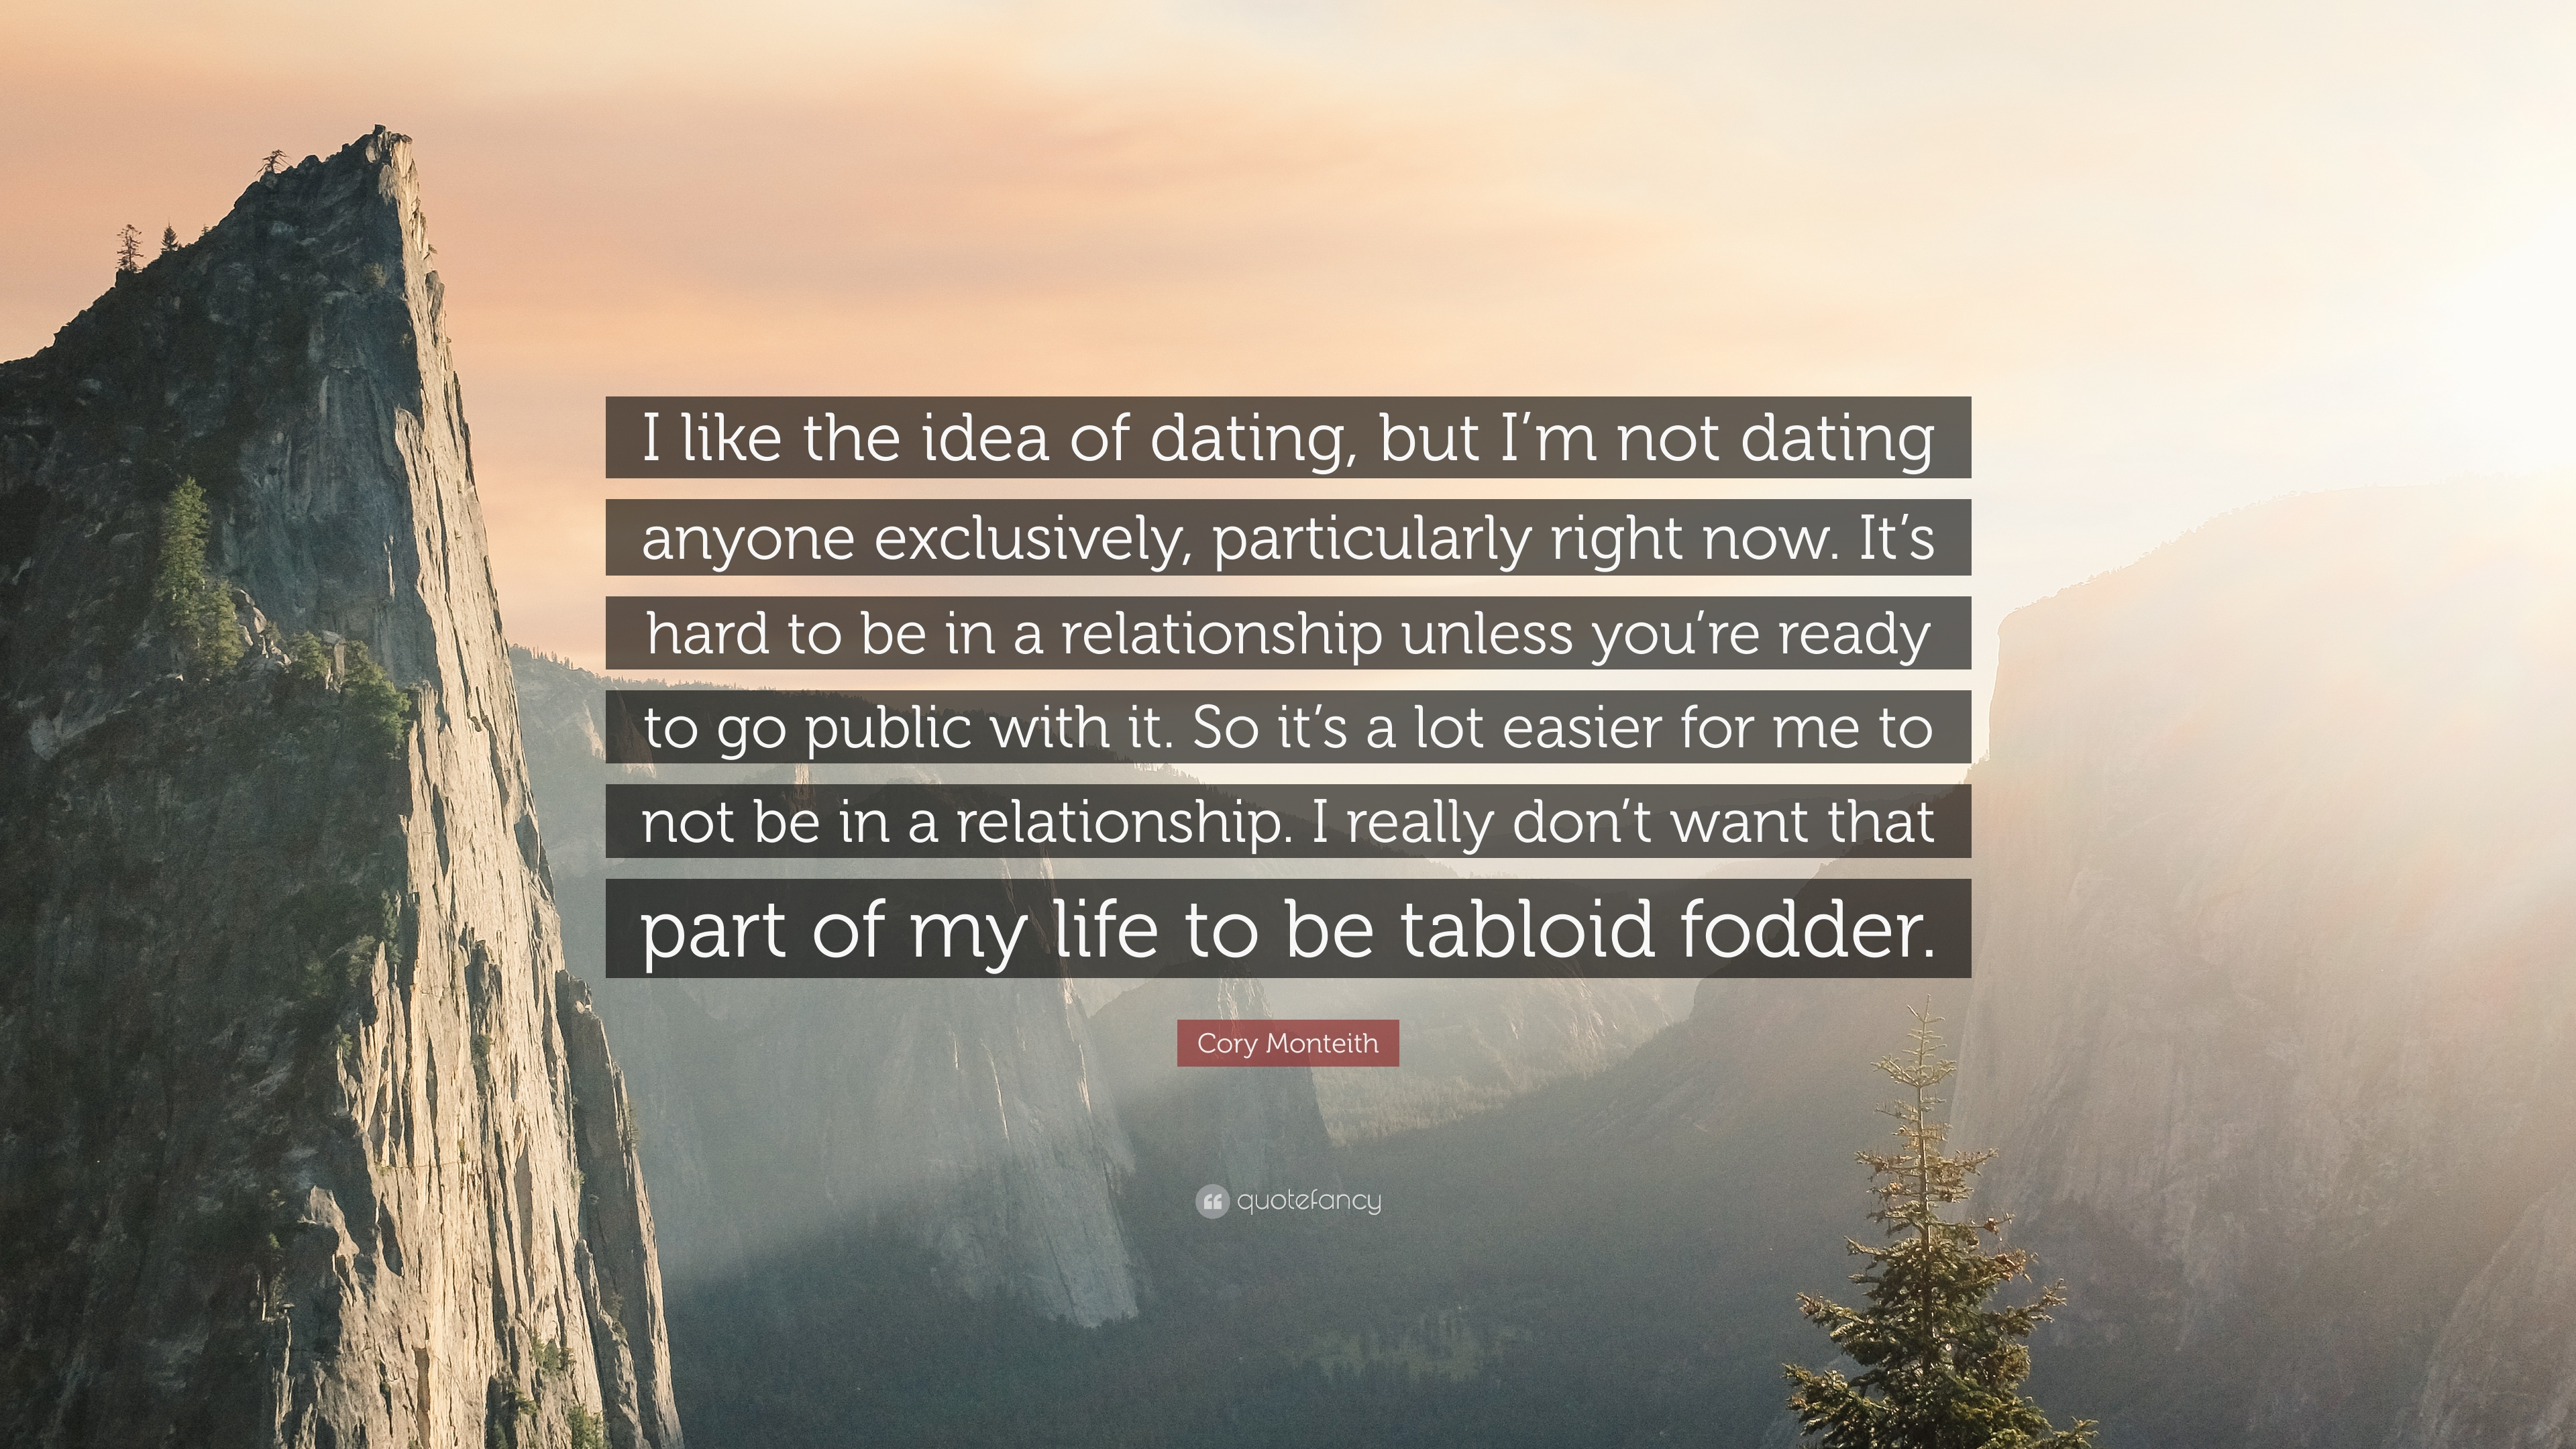 When Does it Feel Right to Go into An Exclusive Dating Relationship?